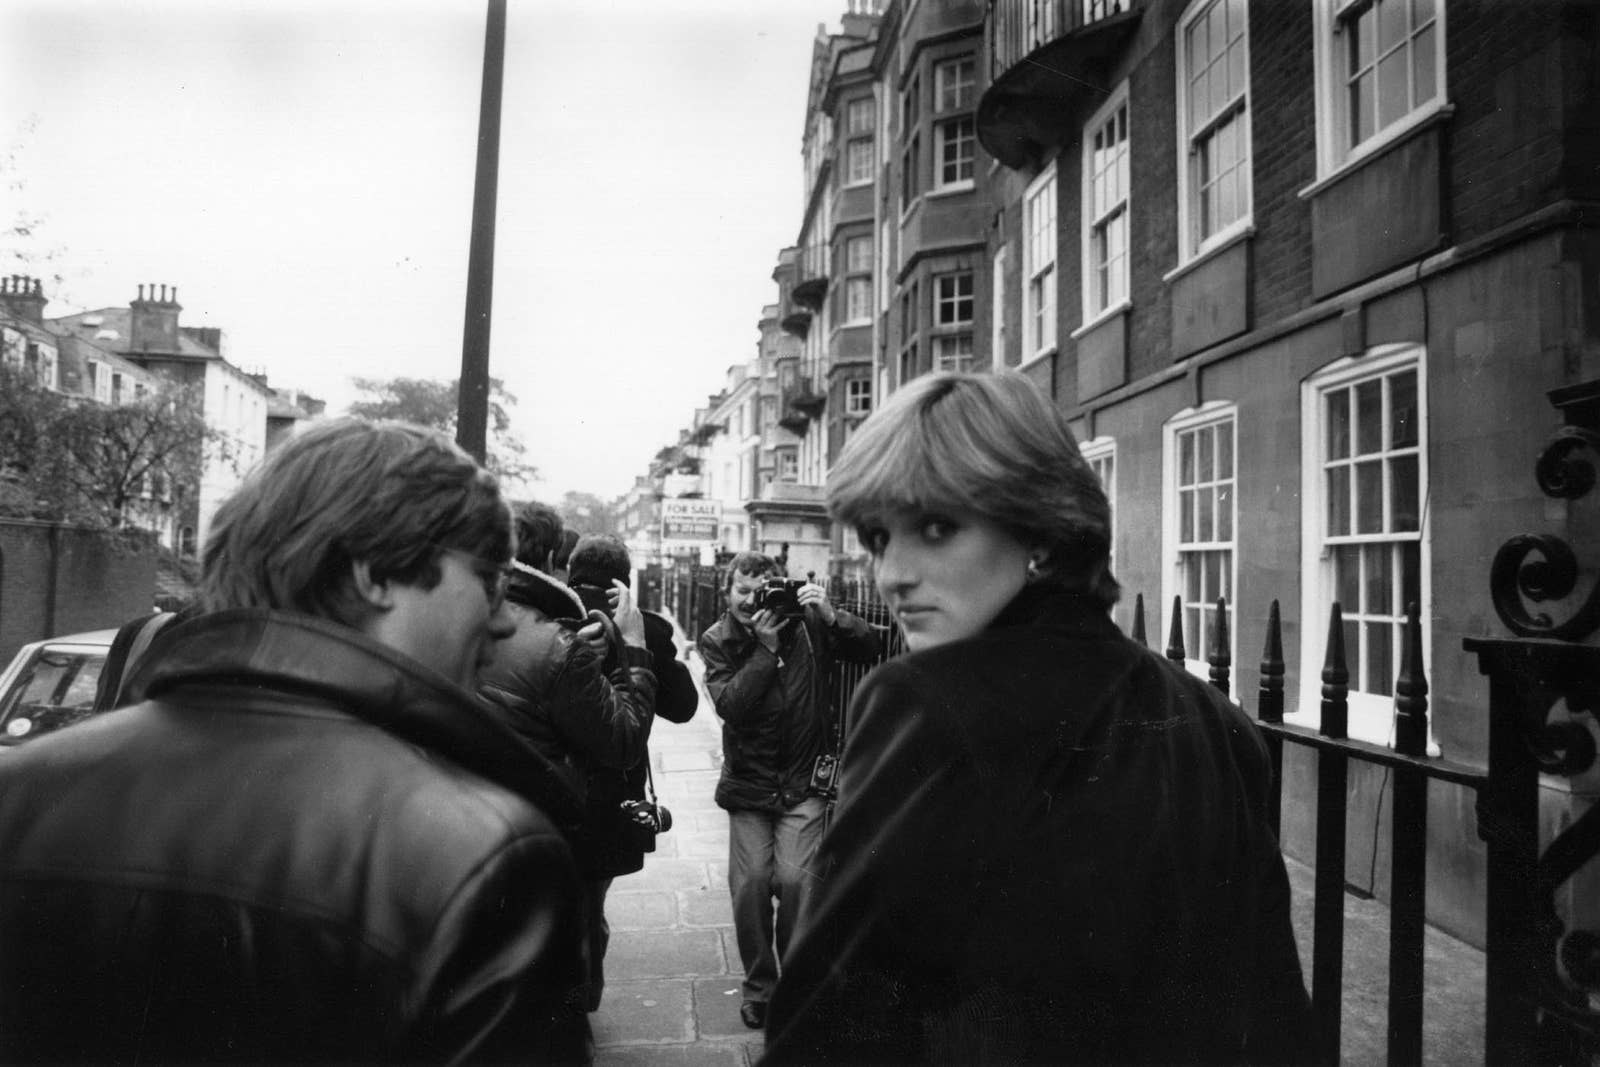 Princess Diana looking back over her shoulder in a throng of camera operators